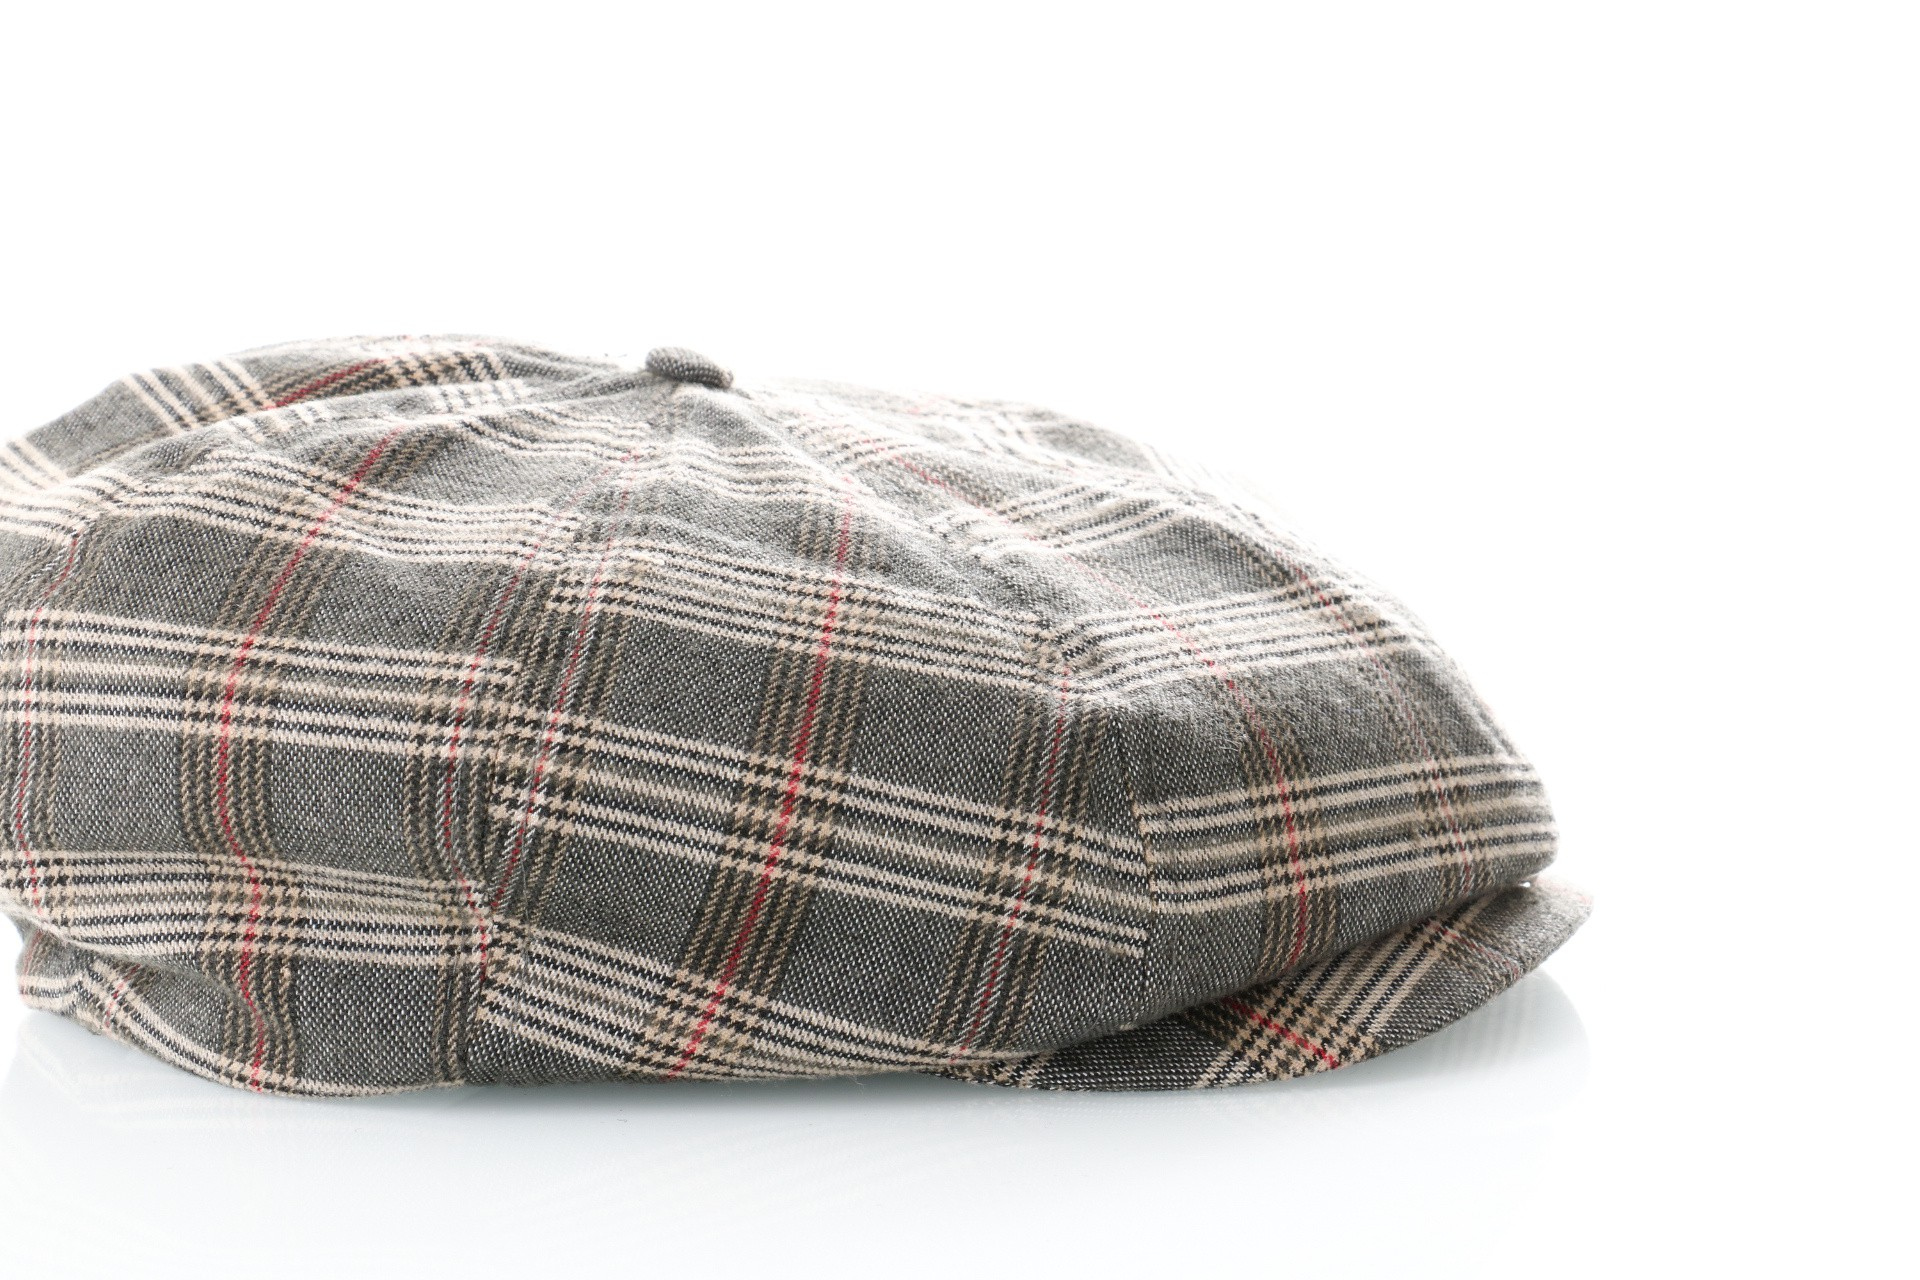 Afbeelding van Brixton Flapcap Brood Snap Cap Grey/Tan Plaid 6